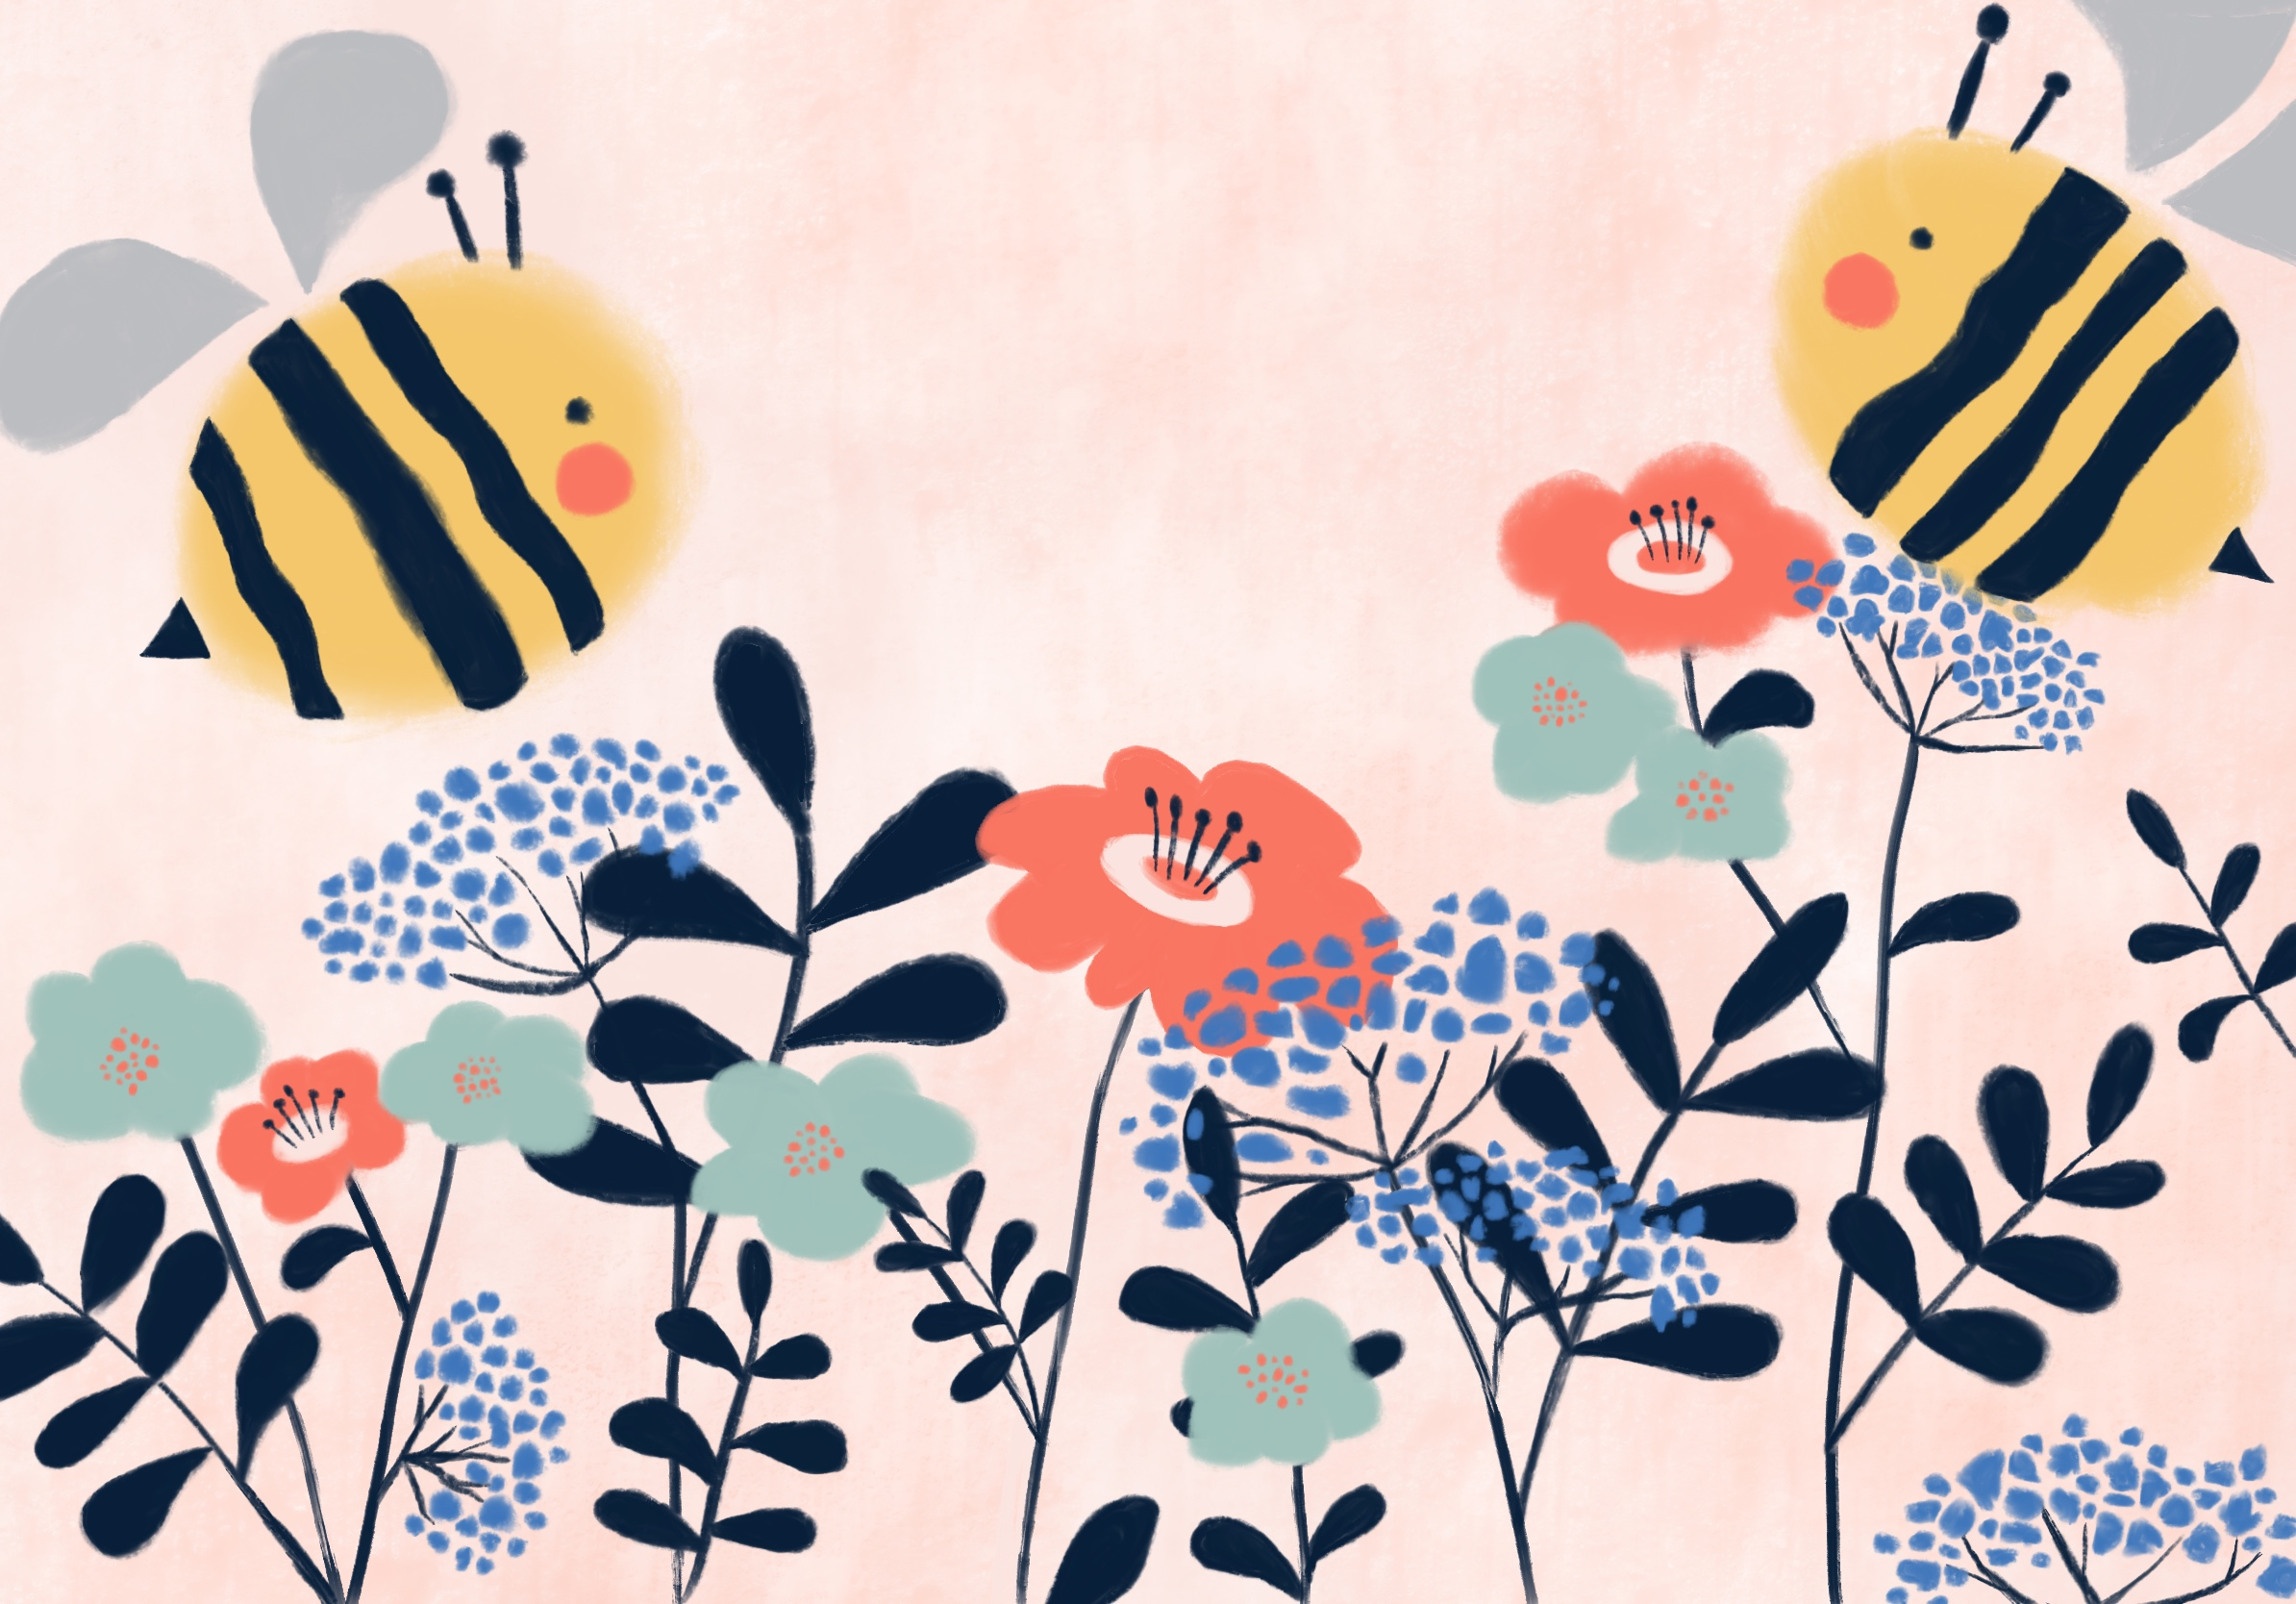 Busy bees - Ages 2 - 3 years